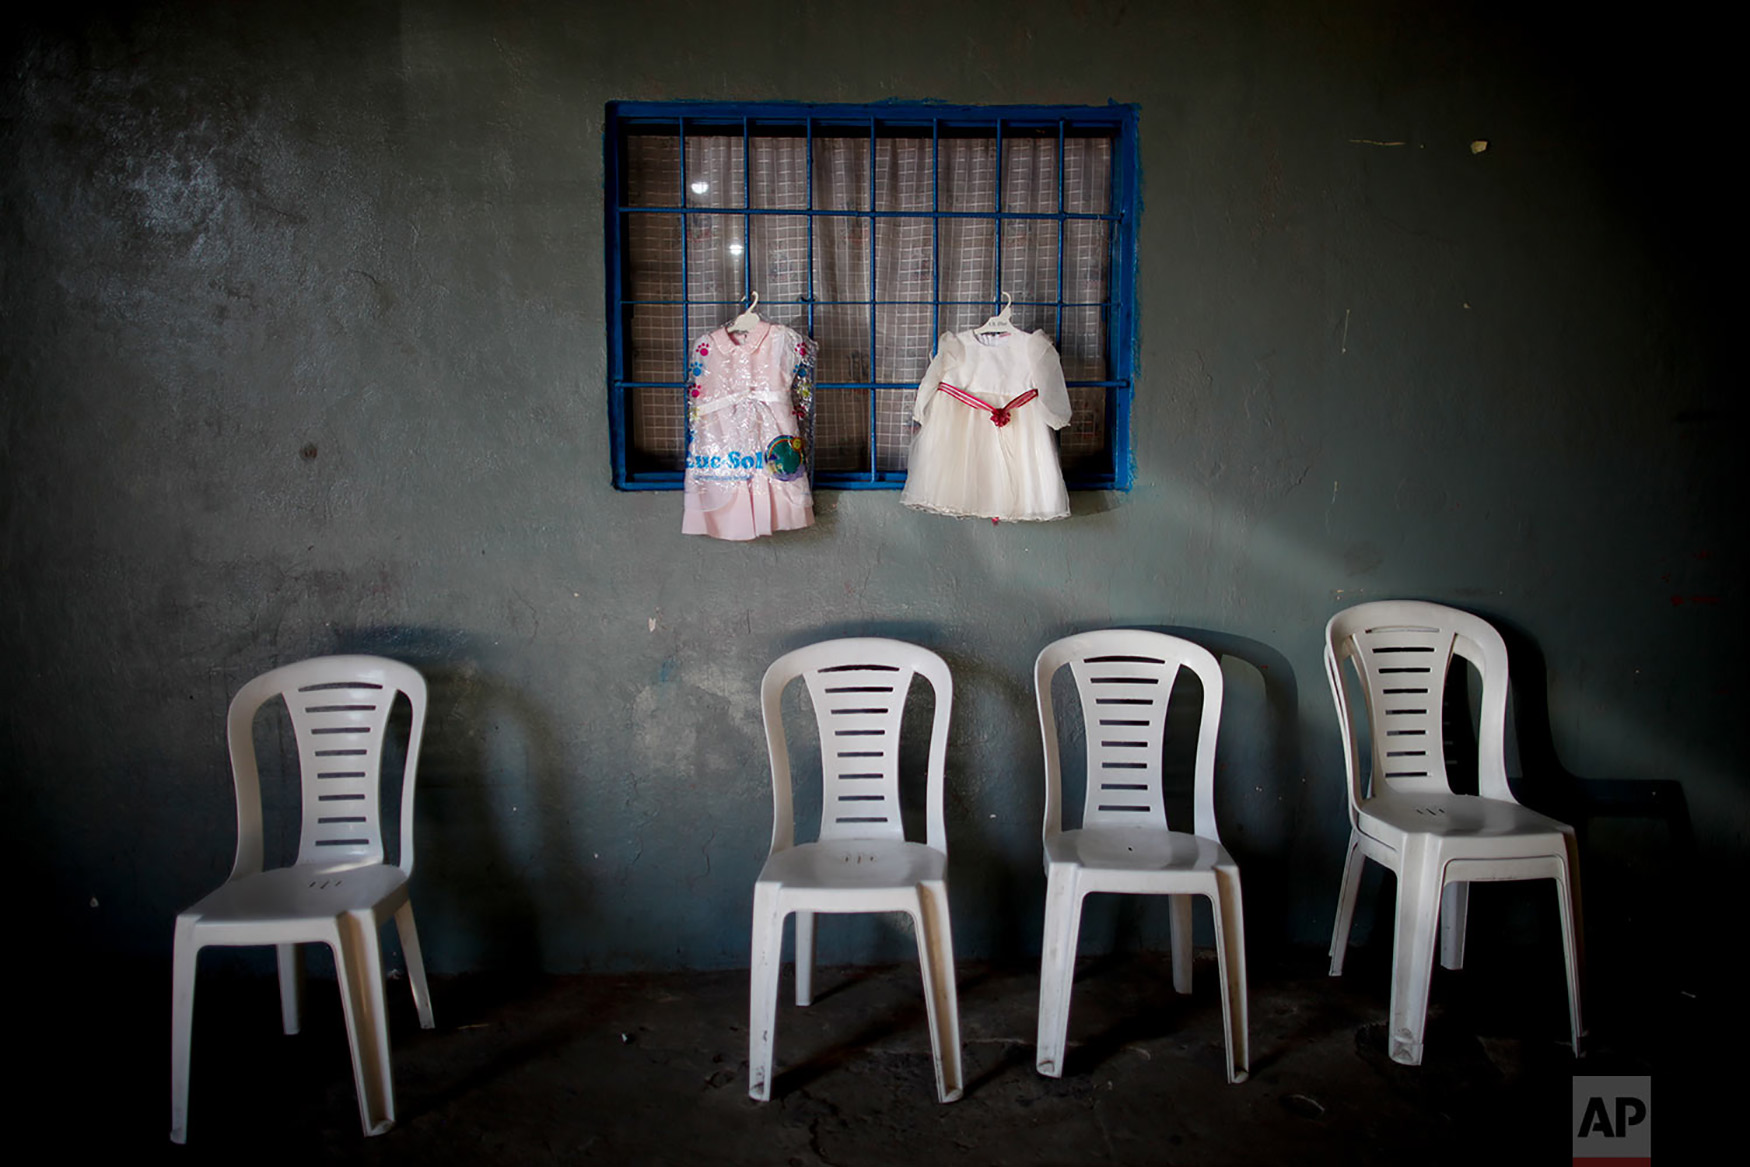 Dresses hang for exchange at a barters market set up by residents inside a community center on the outskirts of Buenos Aires, Argentina, Sept. 6, 2018. Despite several interest rate hikes by the Argentine Central Bank, the peso has lost more than half its value in less than a year. (AP Photo/Natacha Pisarenko)